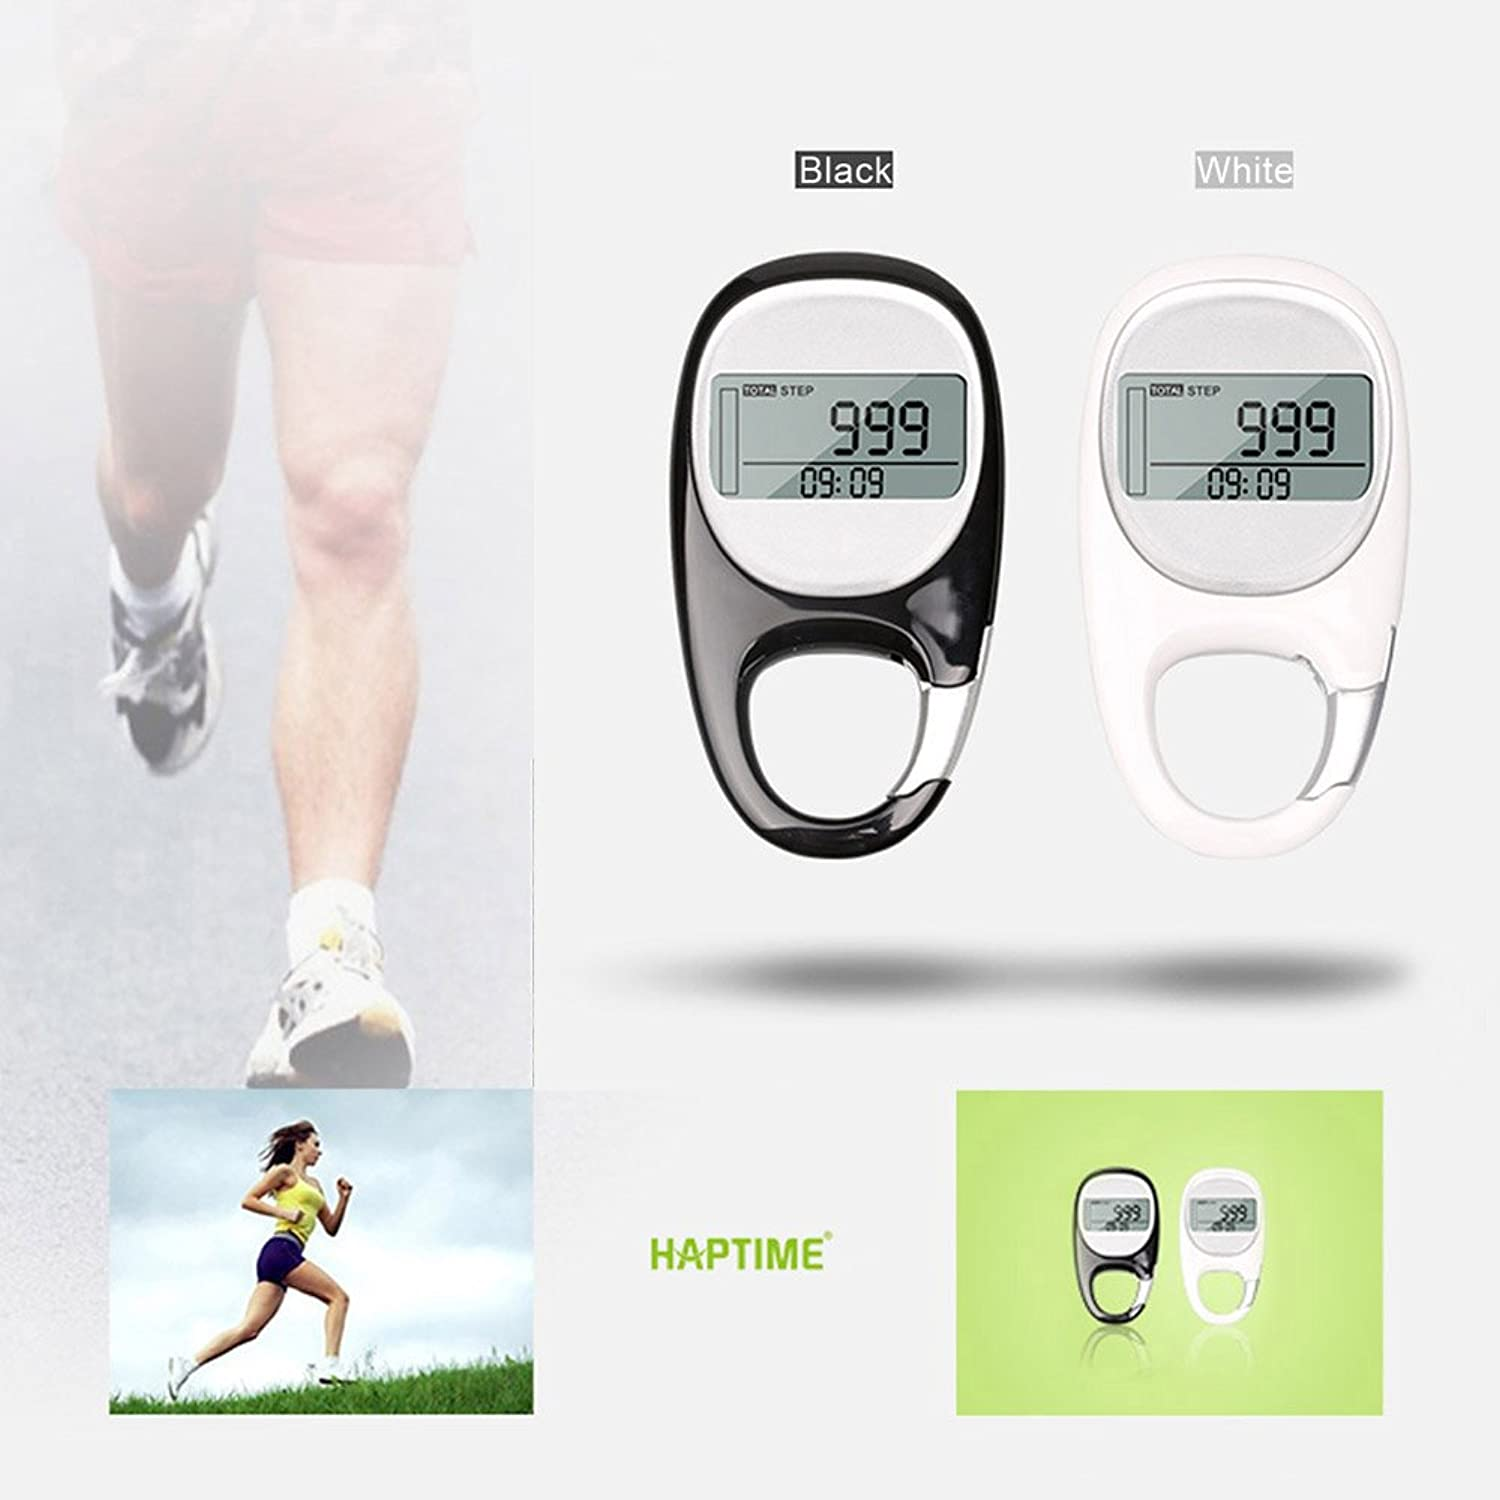 Texay(TM) 3D Pedometer LCD Display Step Calorie Counter Walking Motion Tracker Run Distance with 7Day Memory Clock Goal Setting